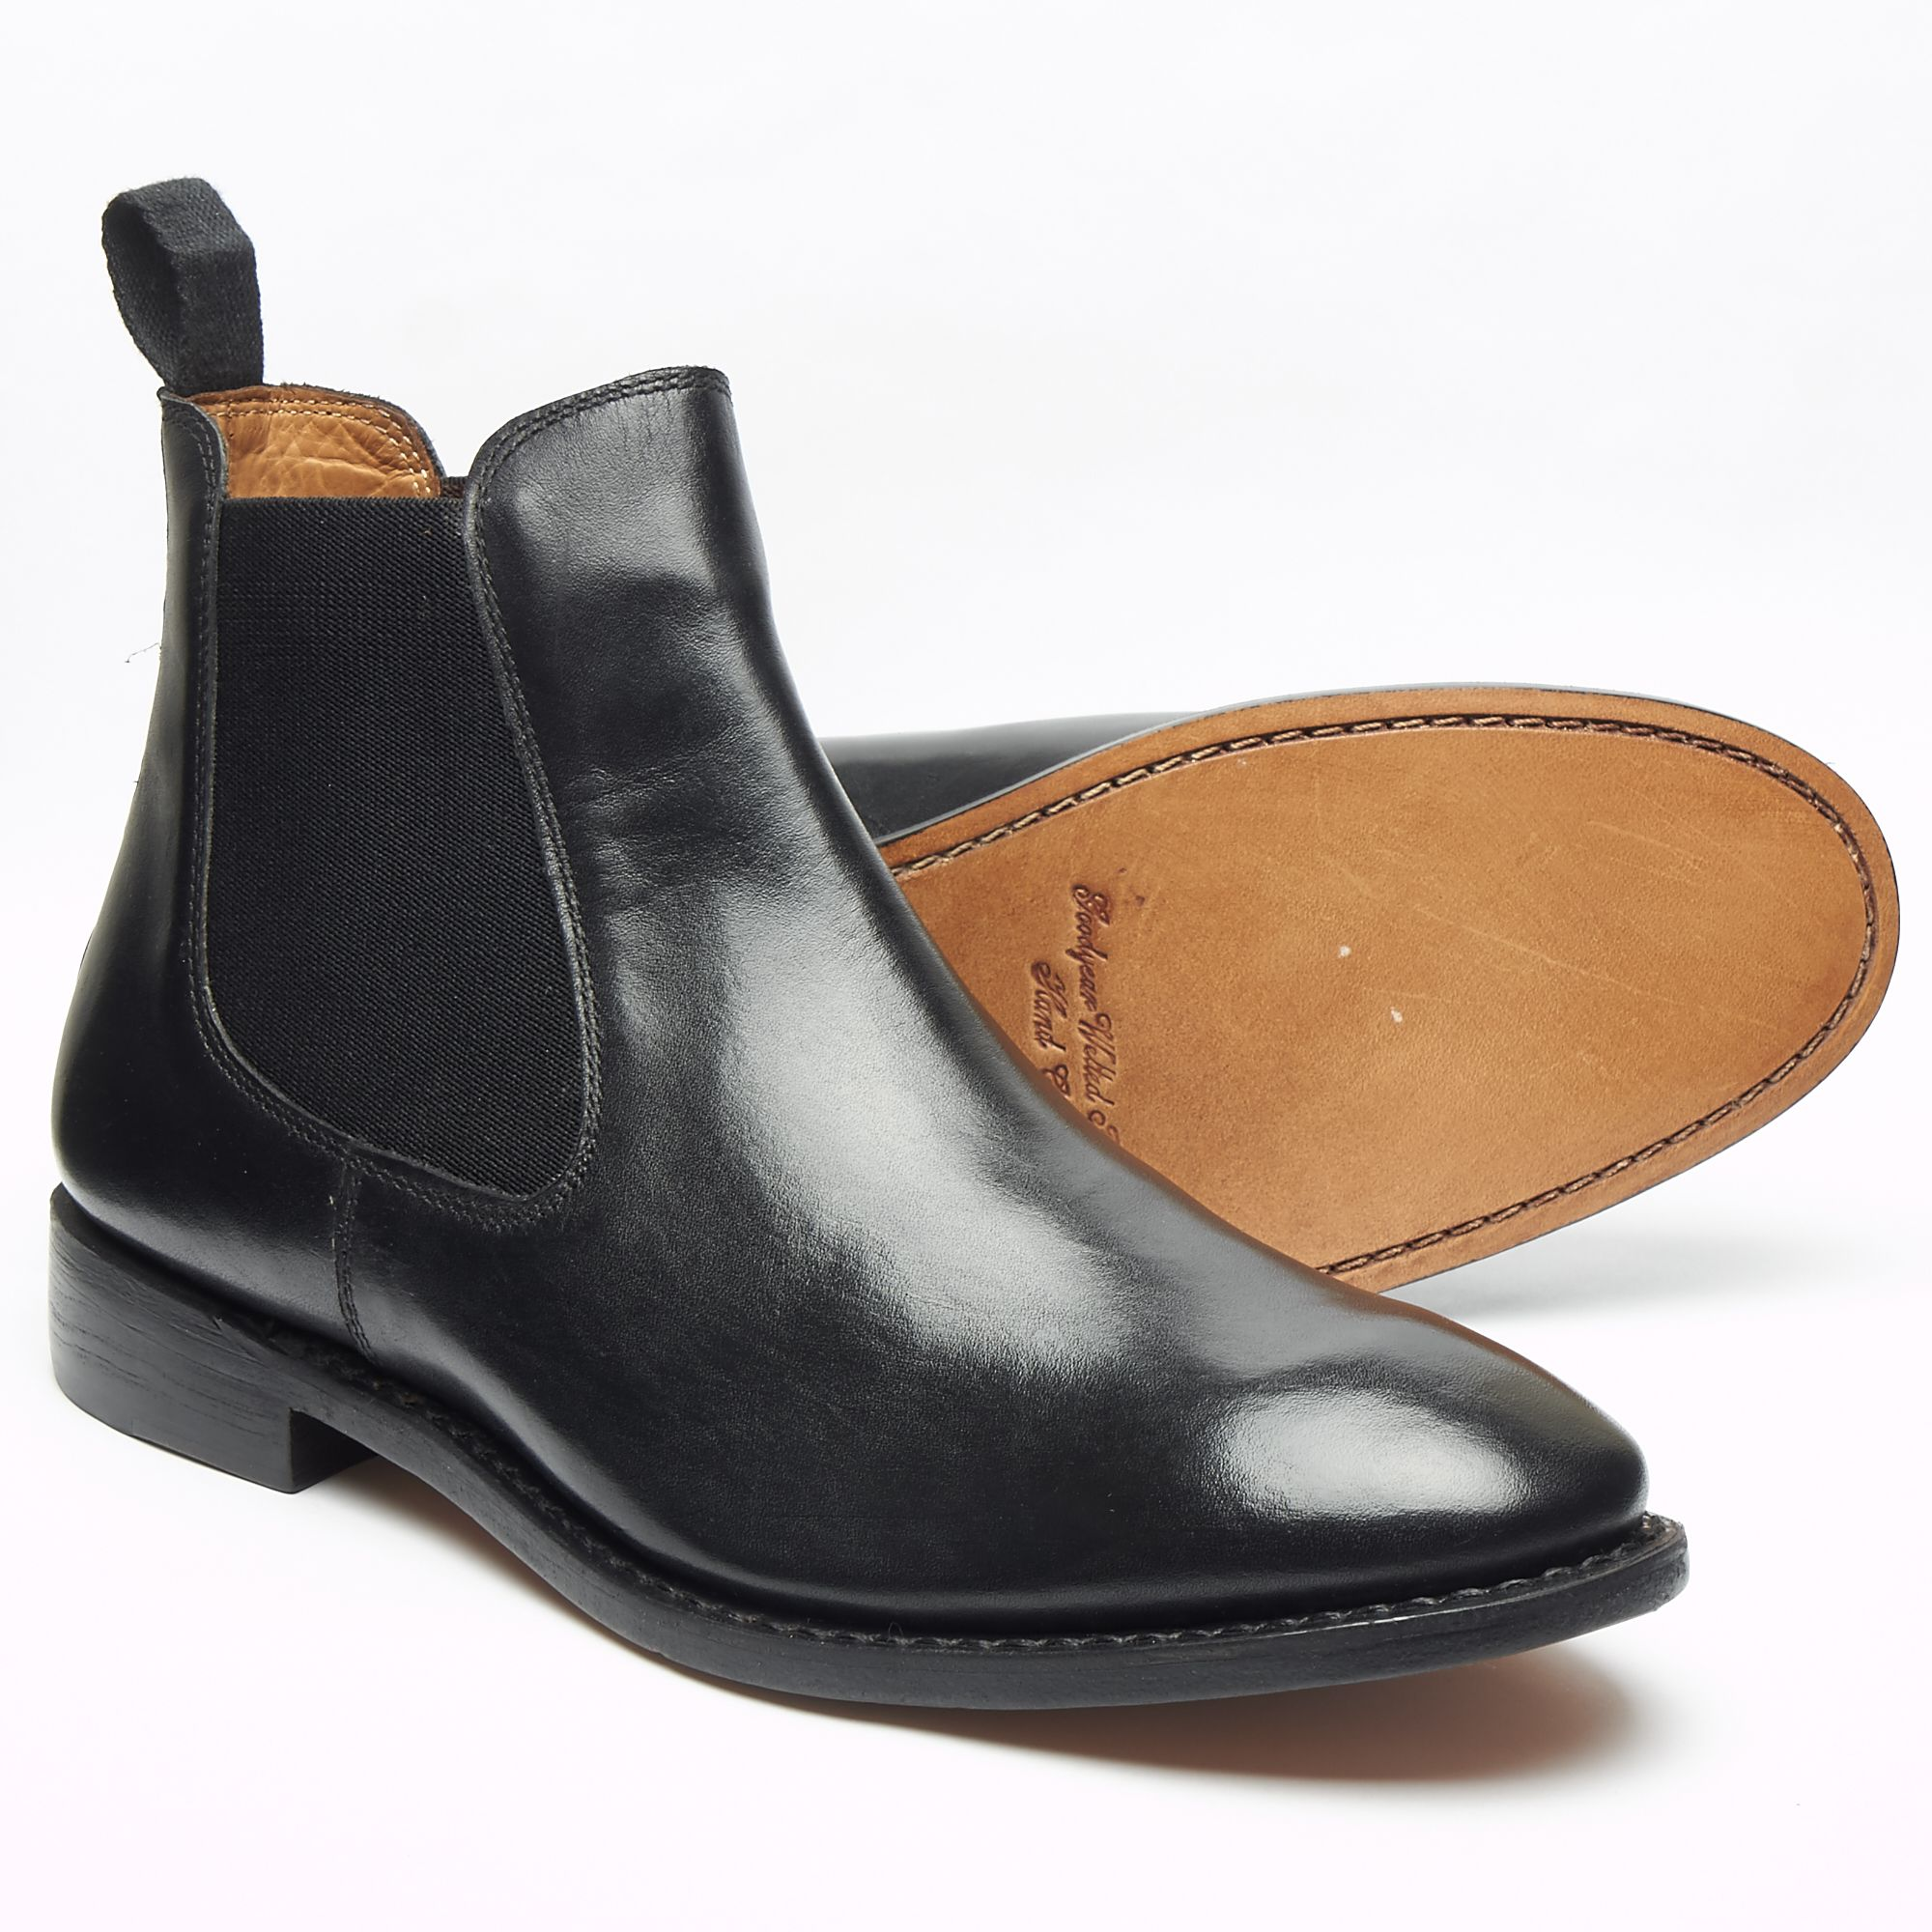 Mens Leather Chelsea Boots WeAp6qR5